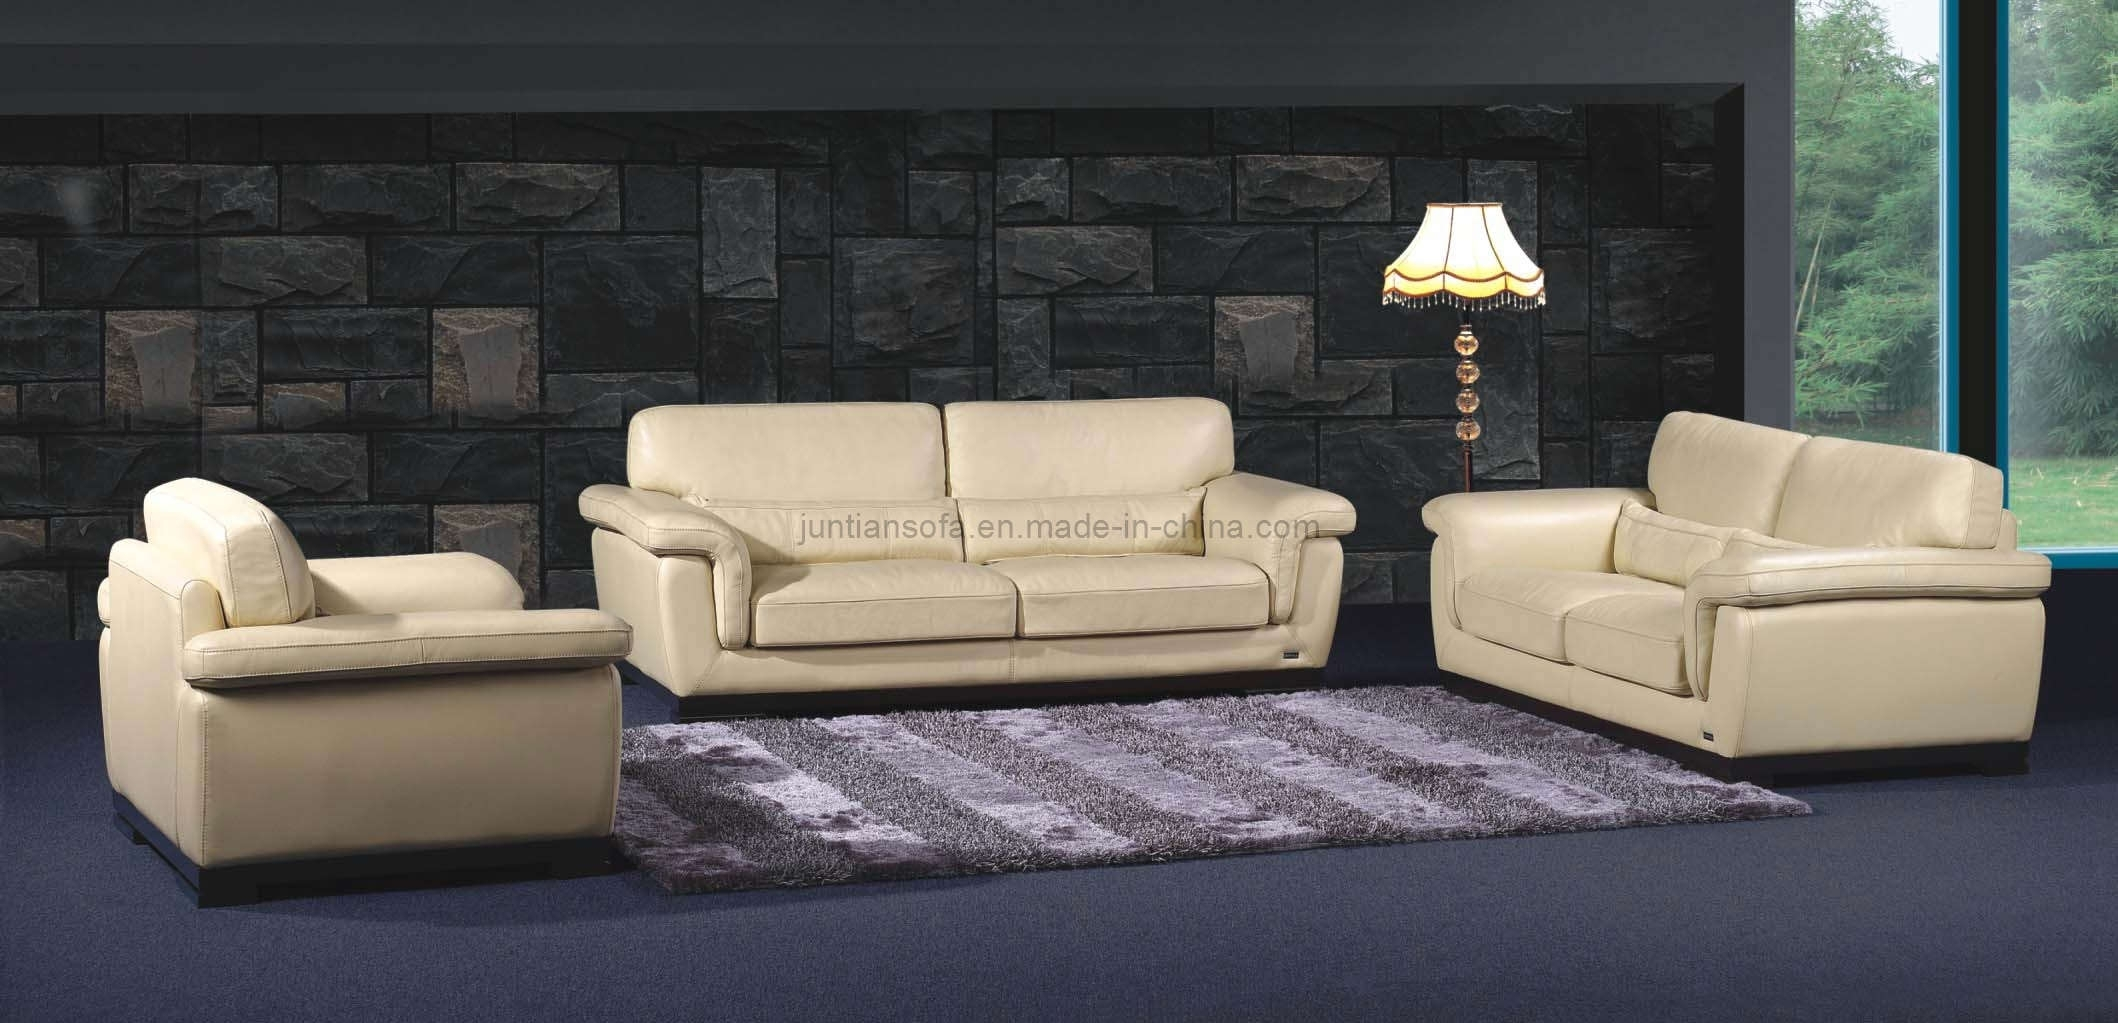 Lovely High Quality Sectional Sofa 30 For Sofa Room Ideas With High For Quality Sectional Sofas (View 10 of 10)